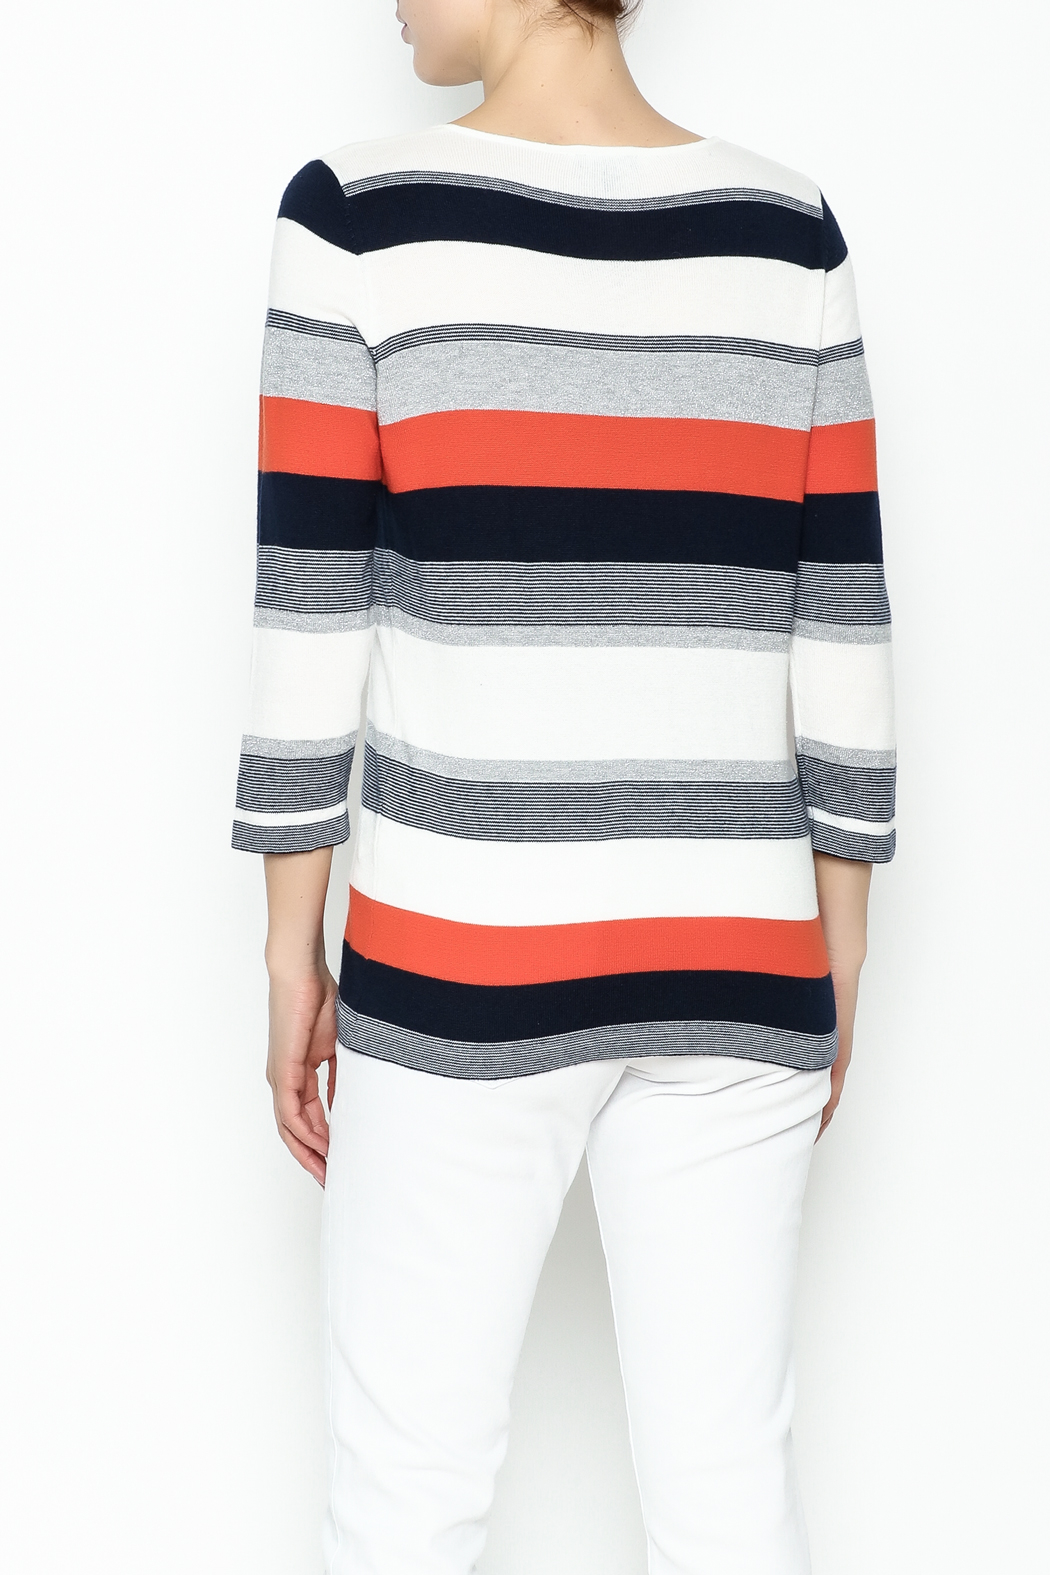 Conrad C Navy Stripes Sweater - Back Cropped Image